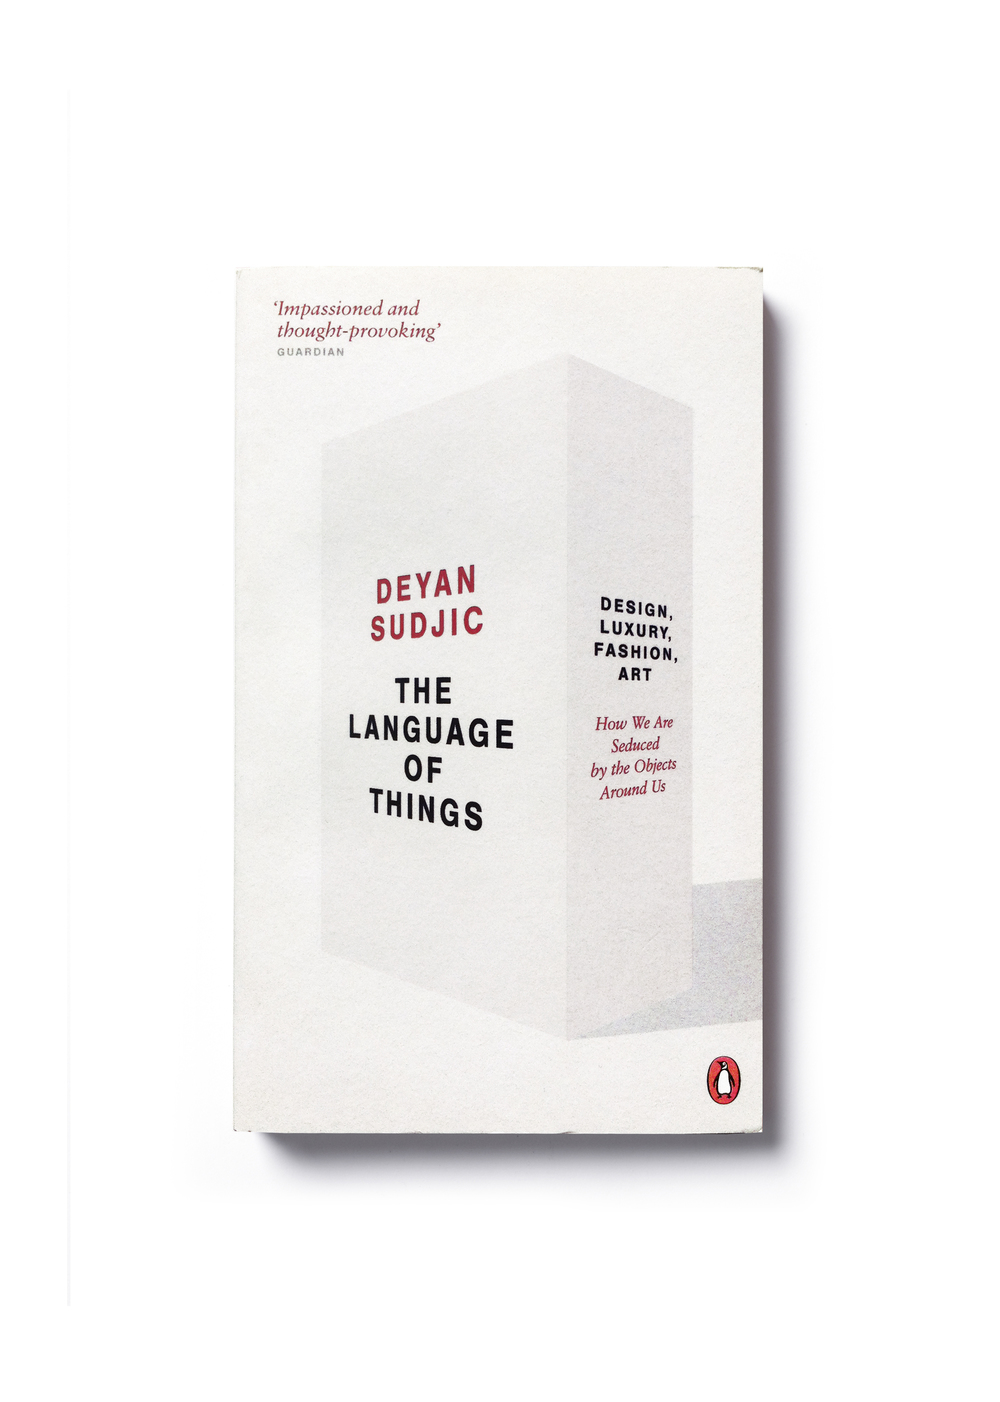 The Language of Things by Deyan Sudjic (paperback) - Design: Jim Stoddart